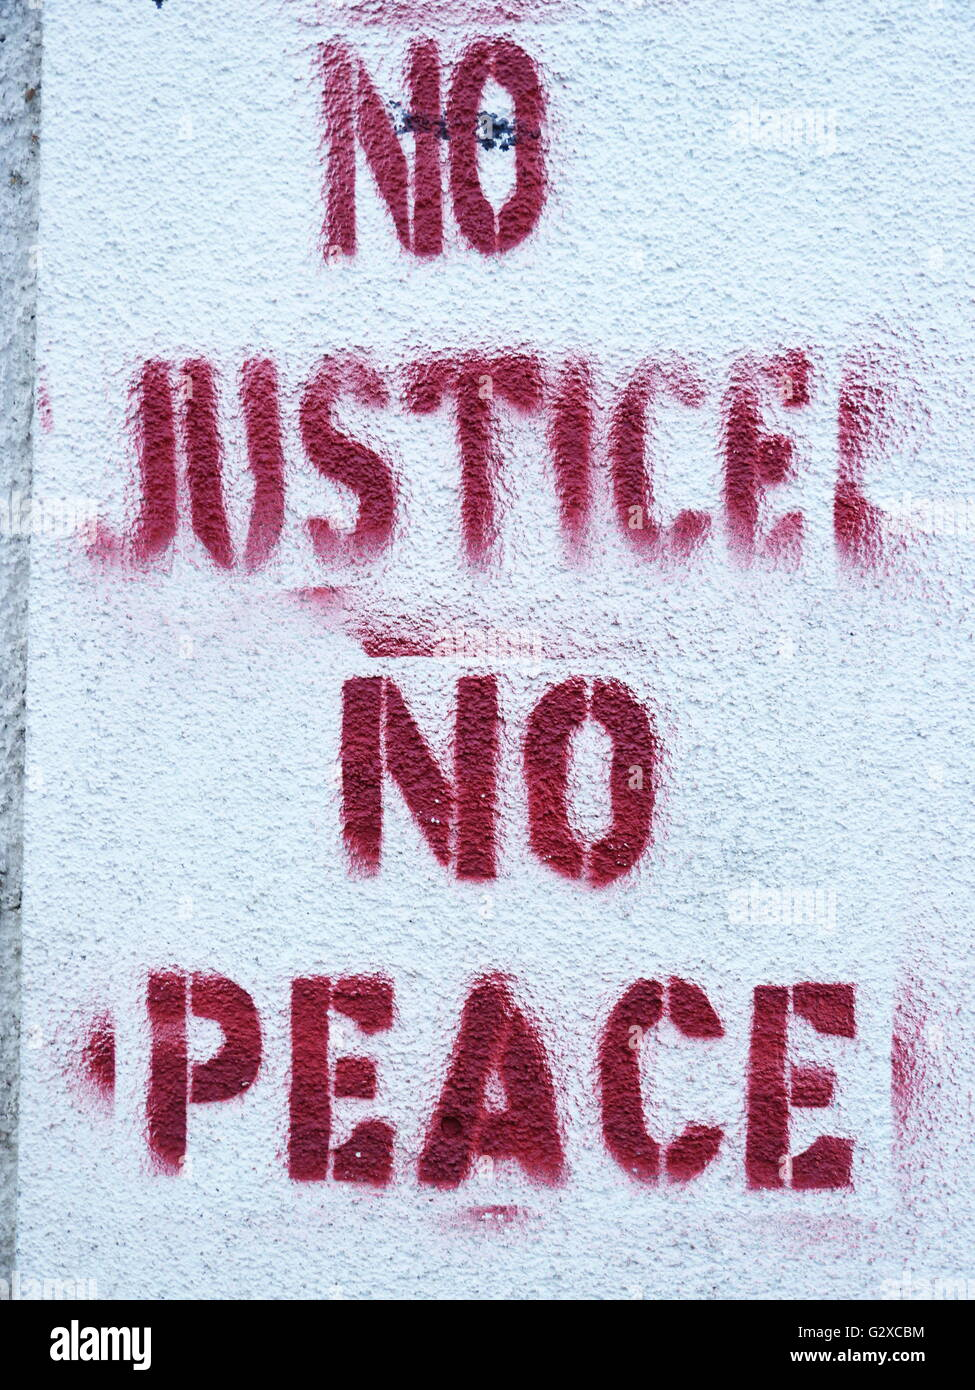 'No justice no peace', 'No justice, no peace' sponti graffiti slogan on a wall, Freiburg, Baden - Stock Image